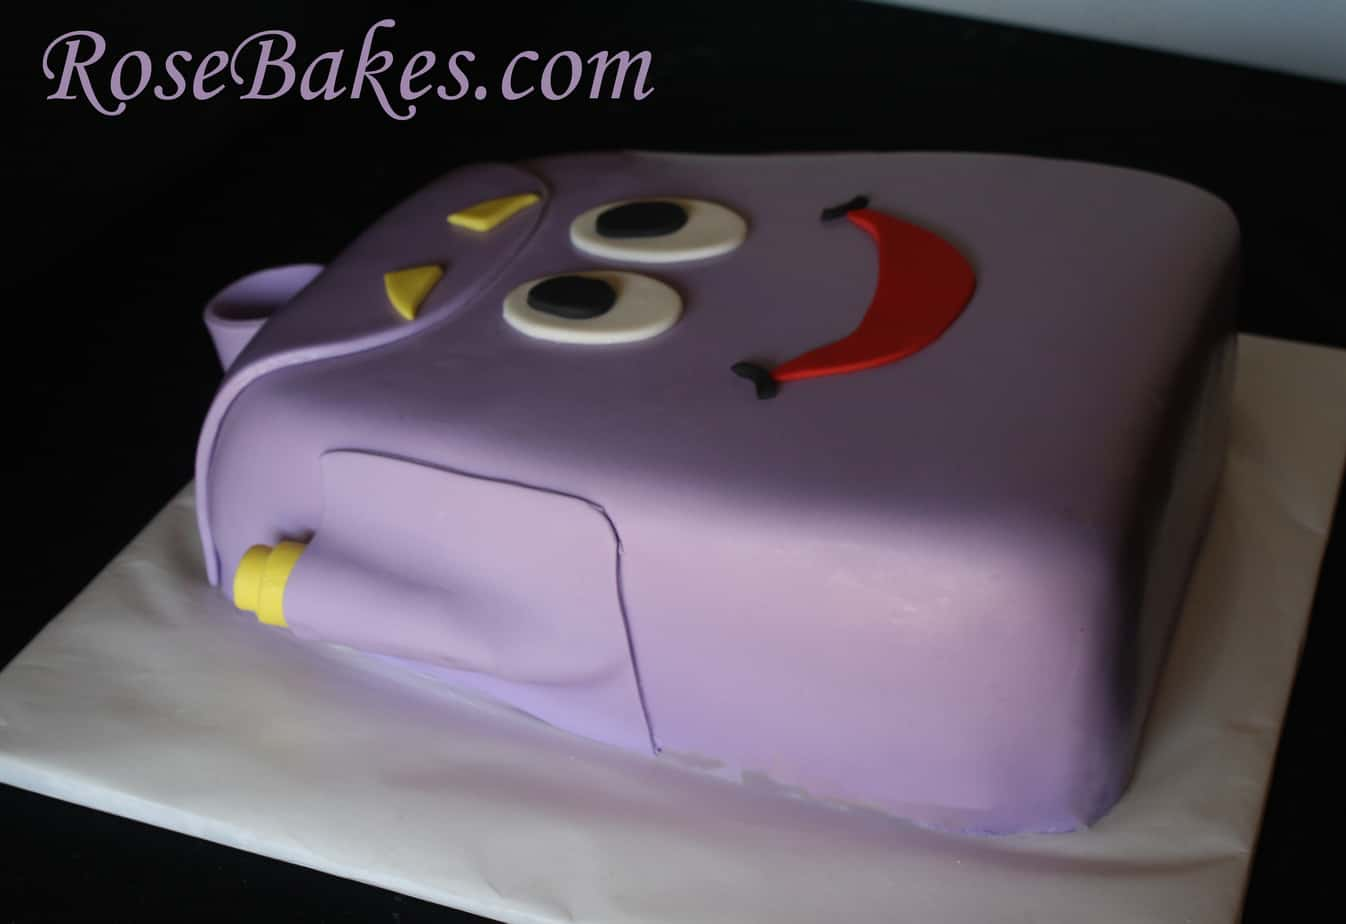 Dora the Explorer Backpack Cake 4 Rose Bakes